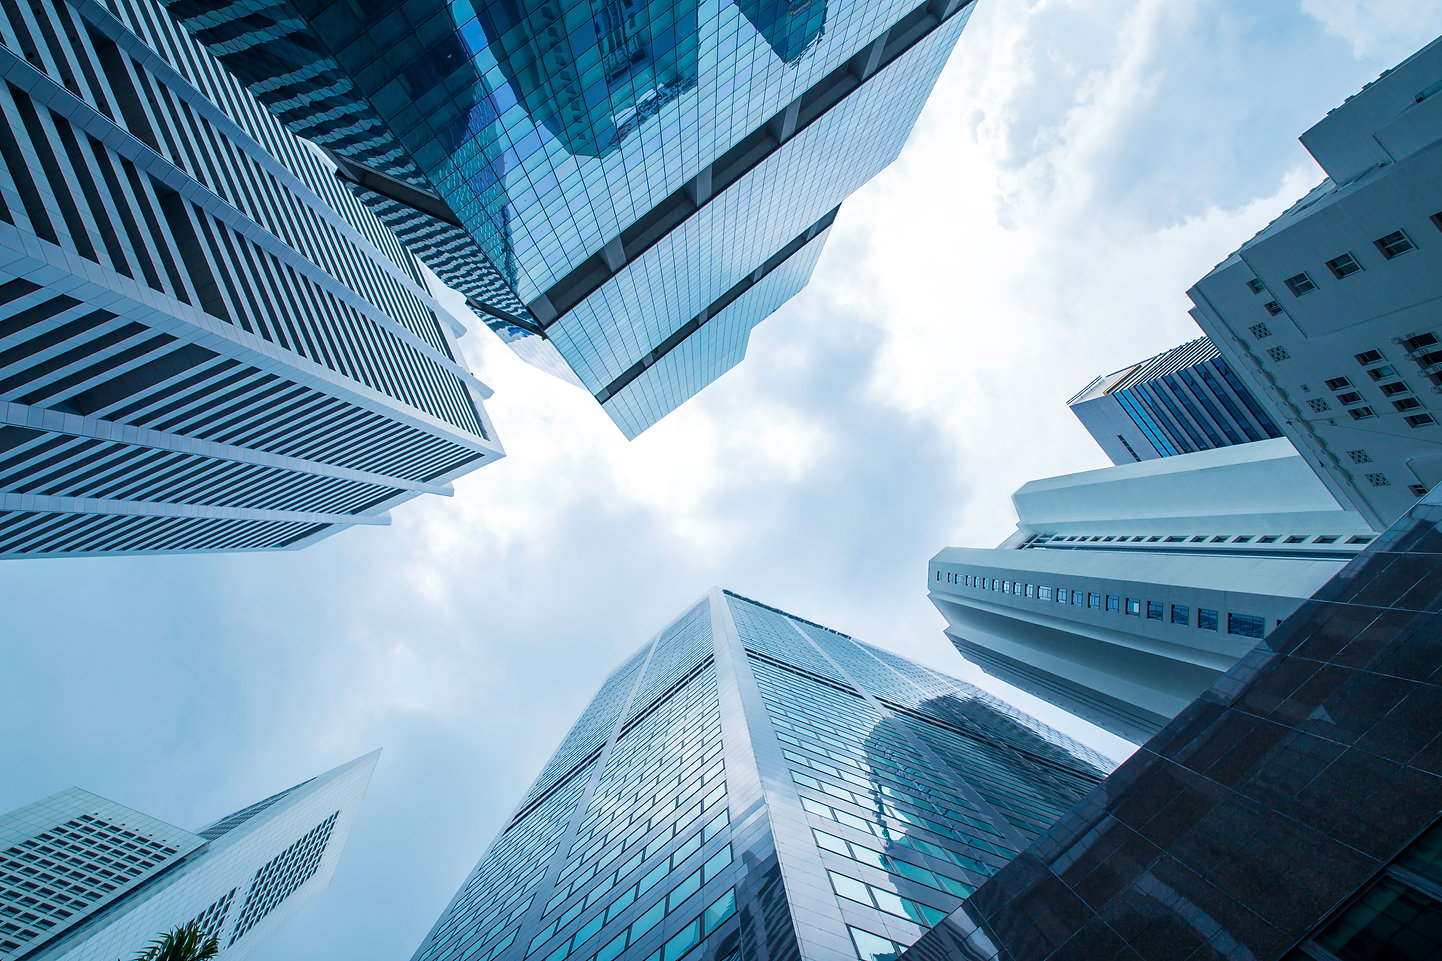 view-modern-business-skyscrapers-glass-s